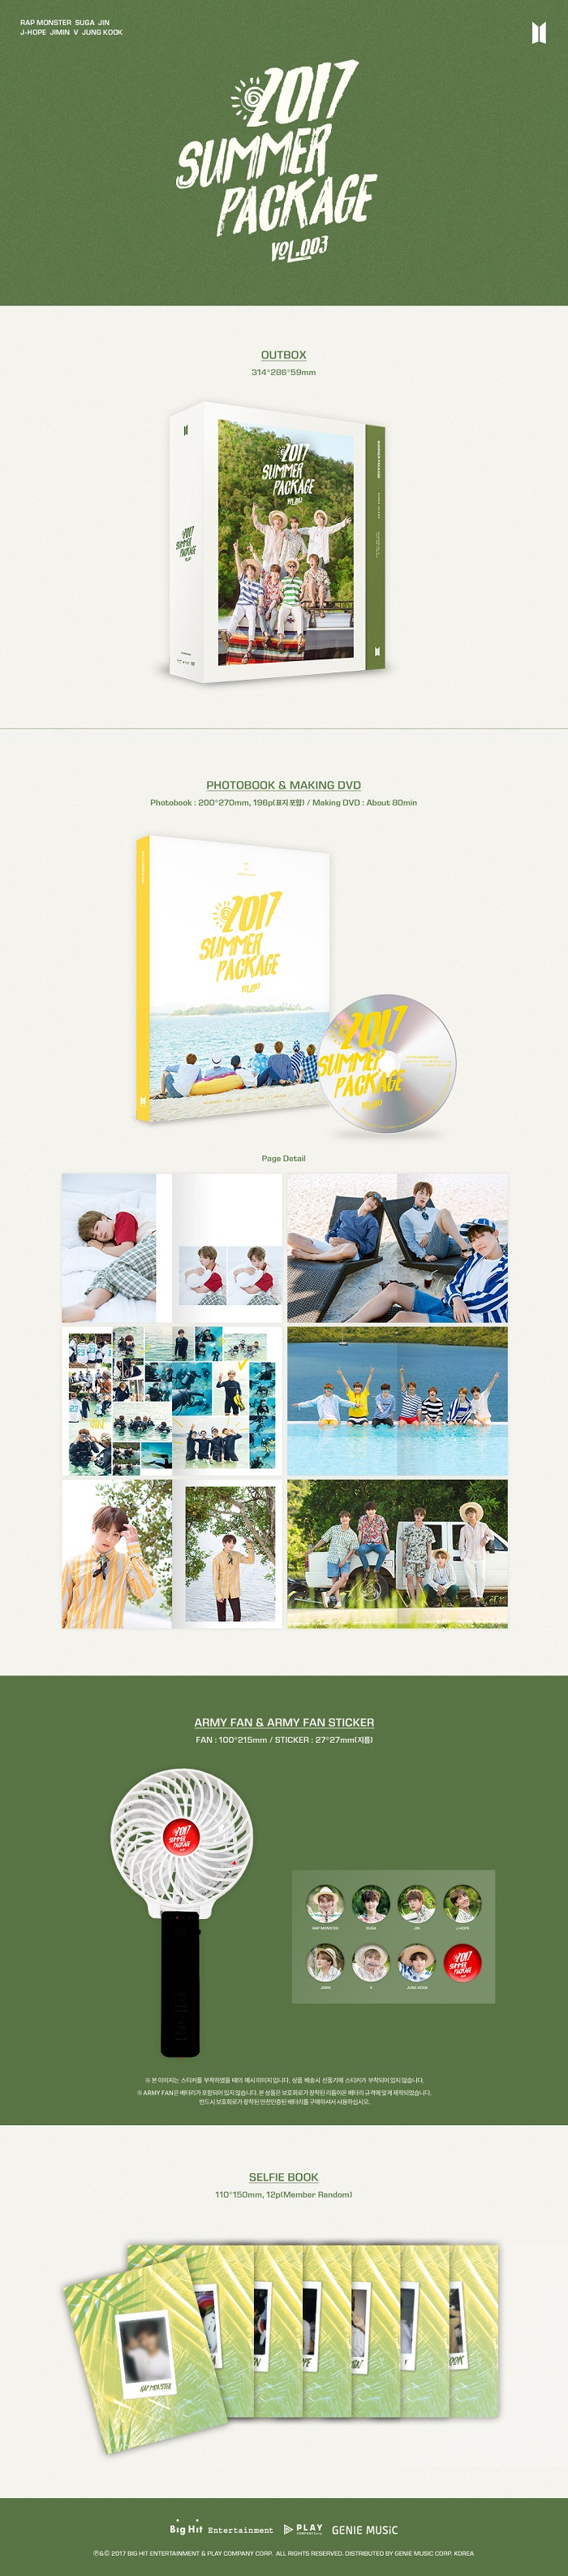 2017 BTS Summer package